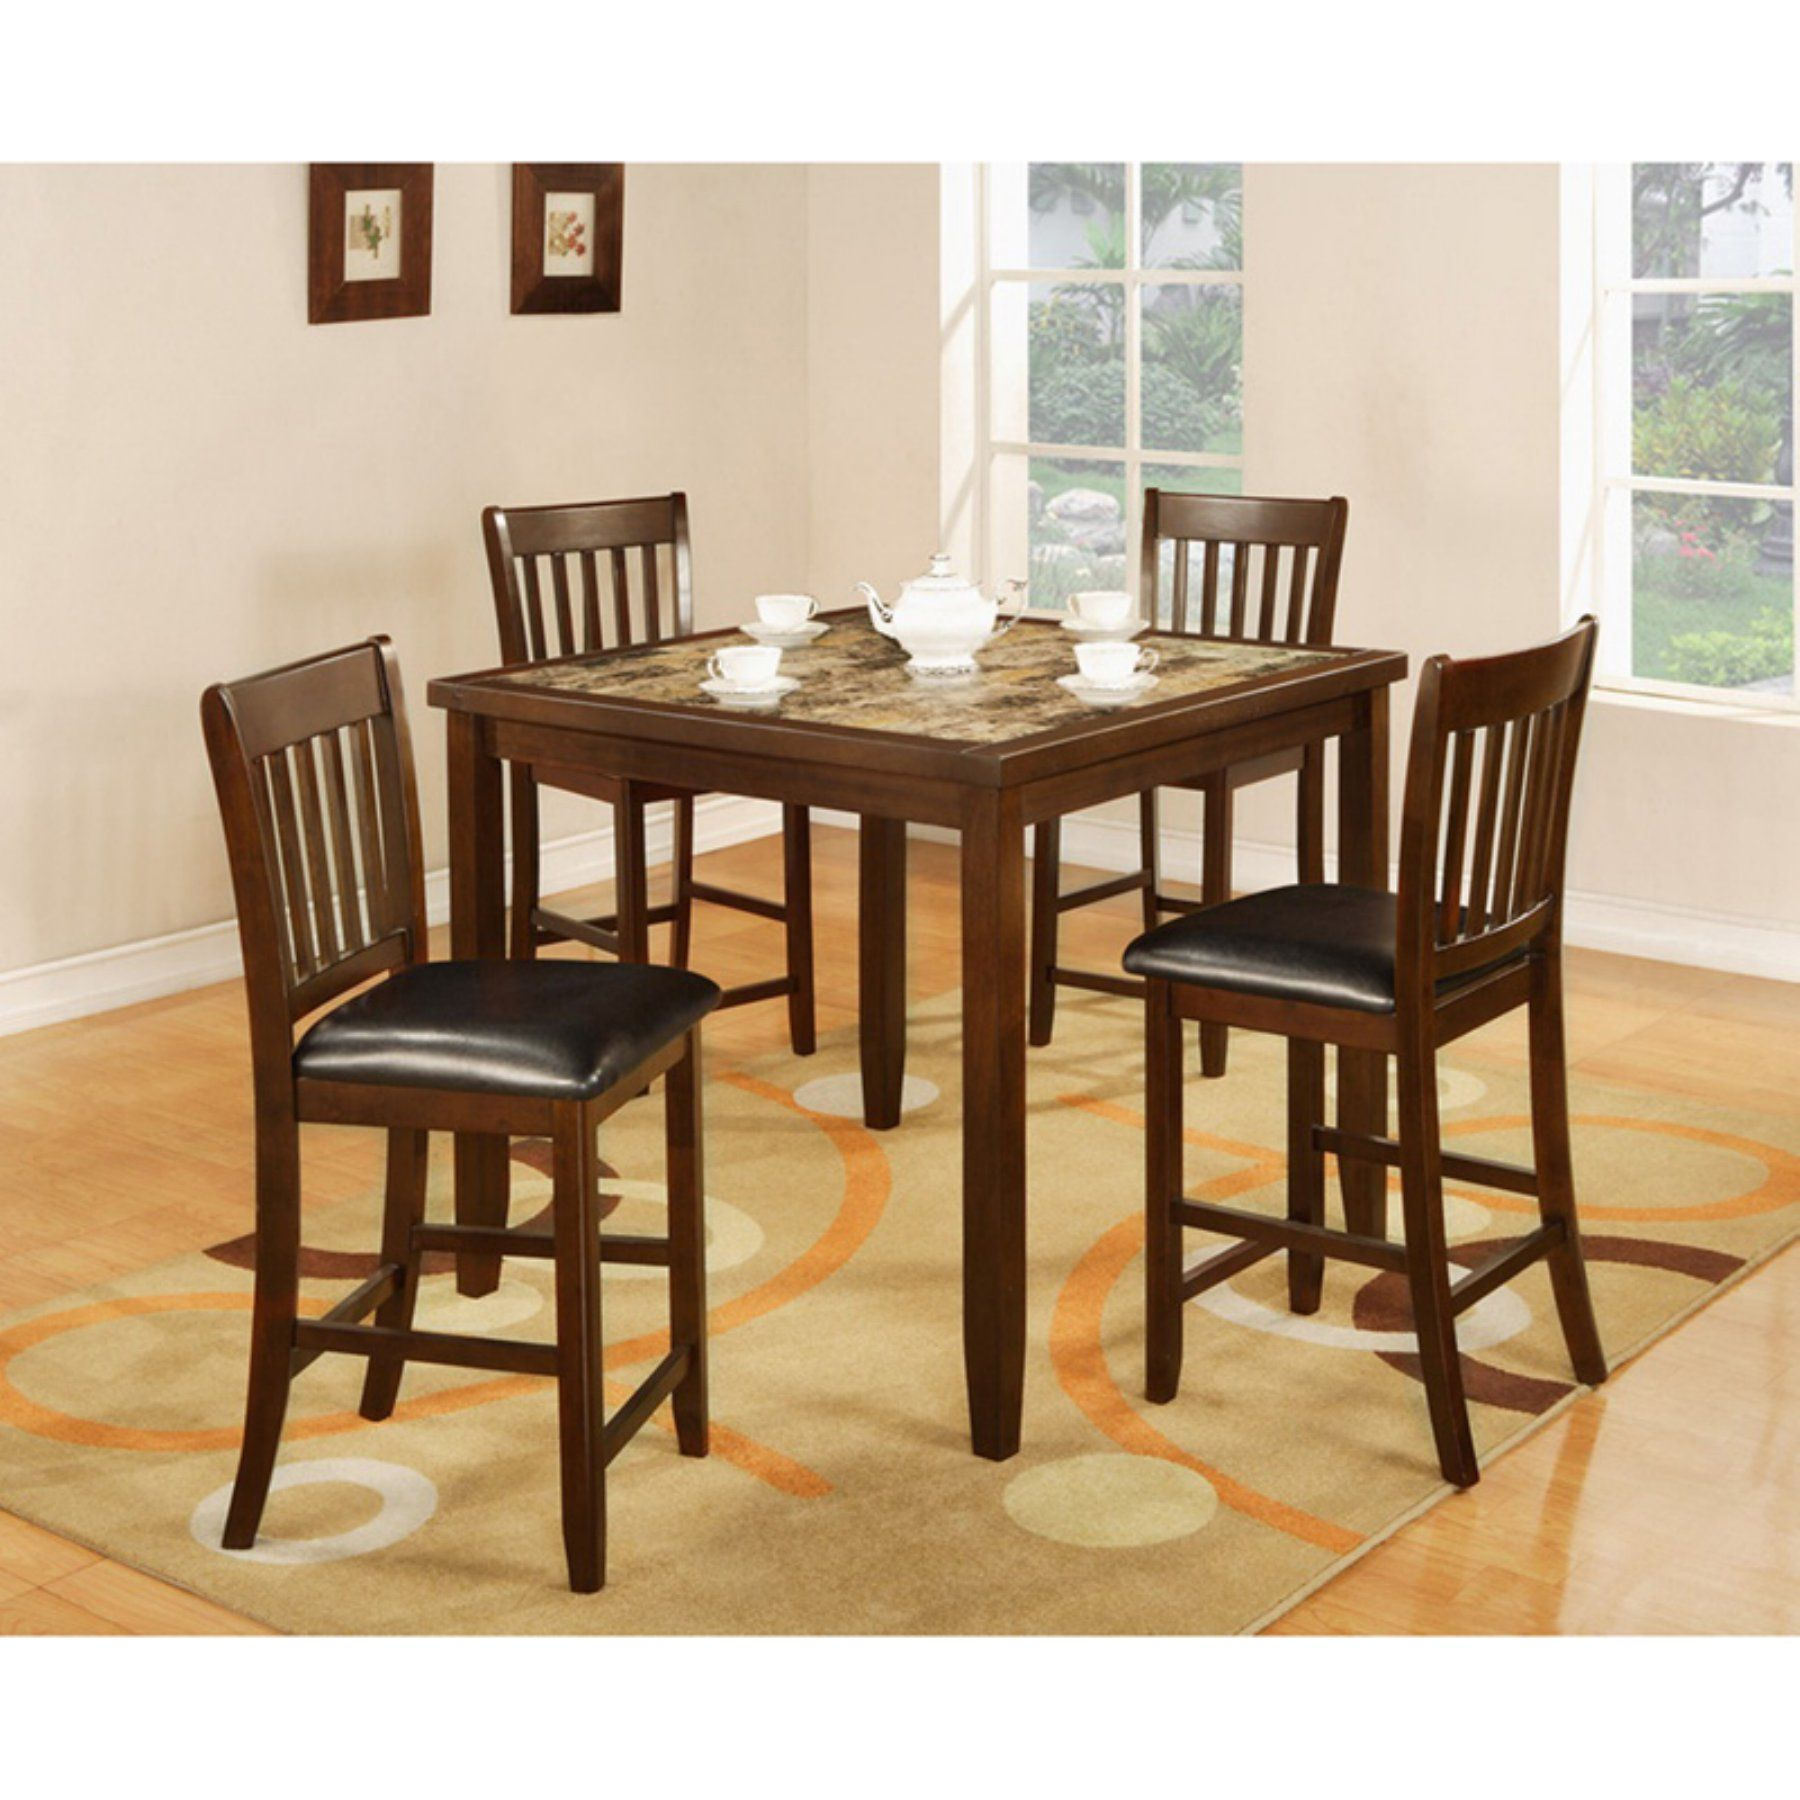 Roundhill Furniture Zoho 5 Piece Faux Marble Counter Height Dining